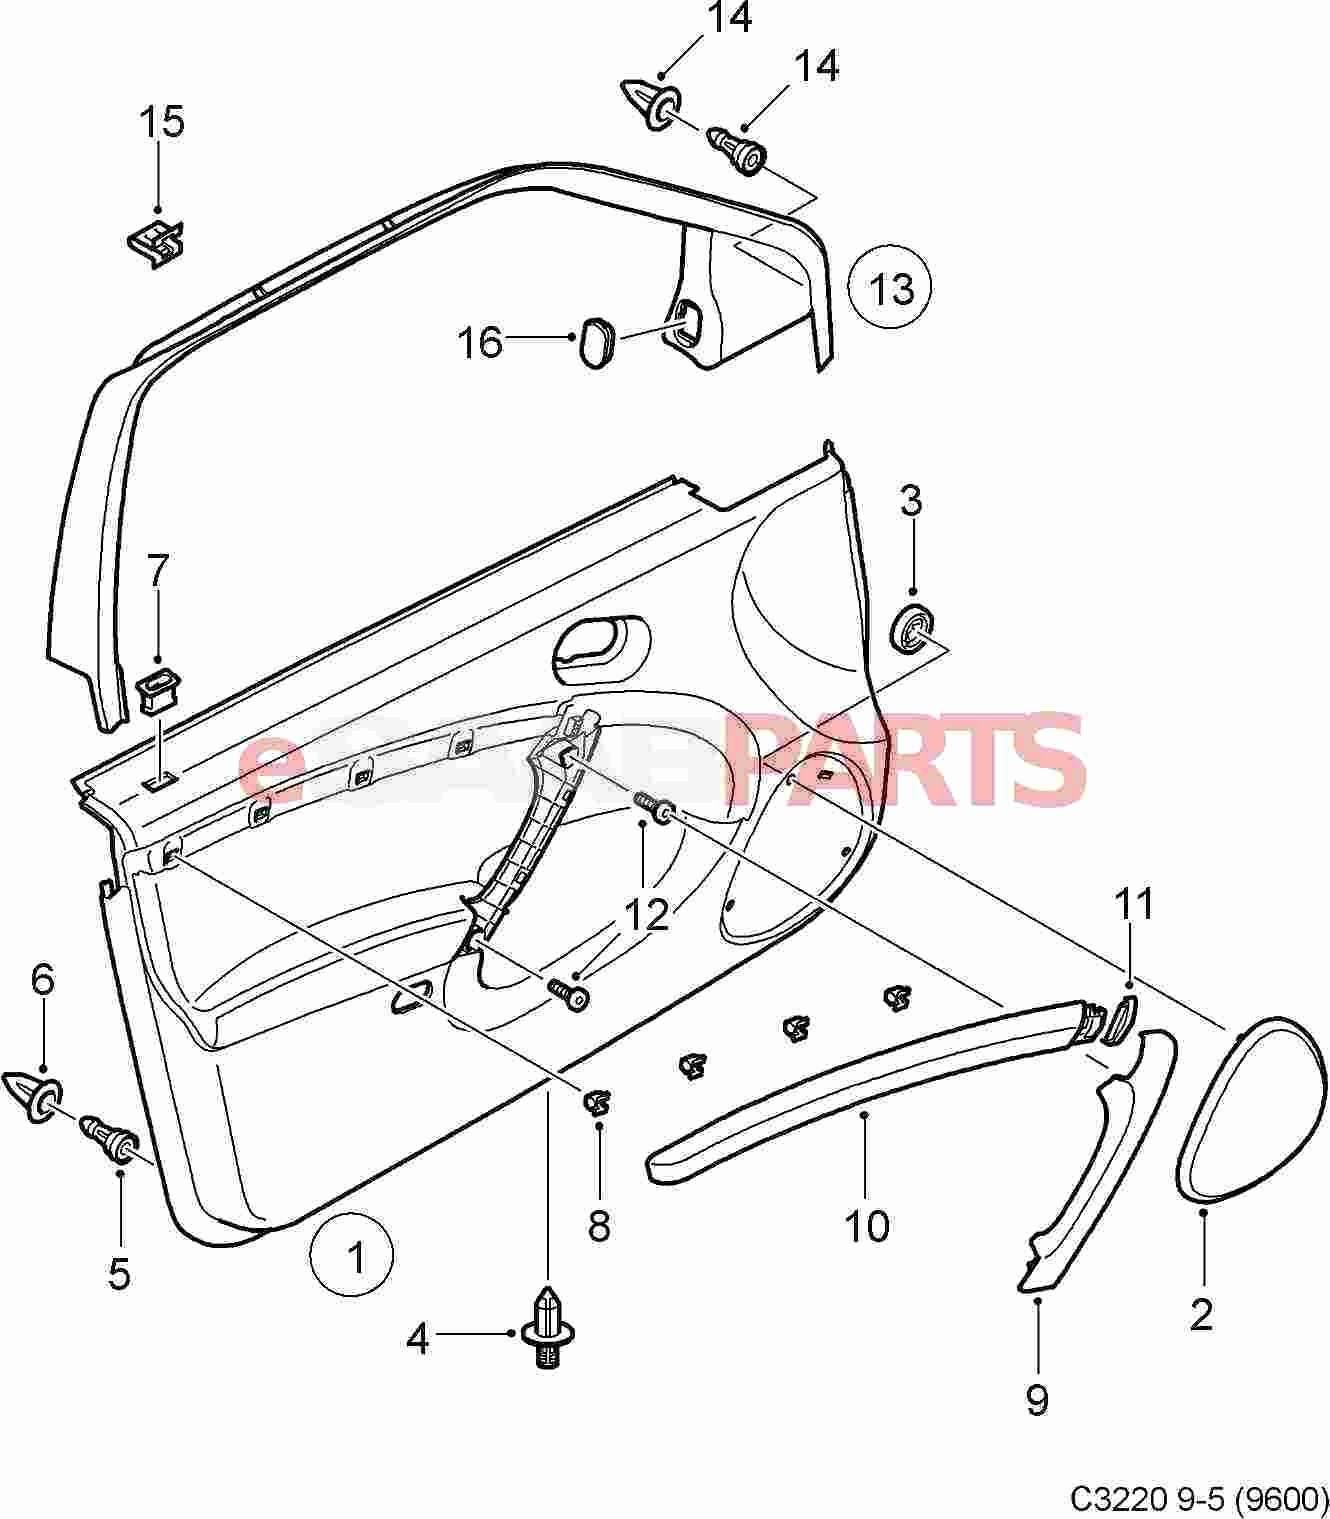 Exterior Car Parts Diagram Car Exterior Body Parts Diagram Beautiful Parts A Manual Car Of Exterior Car Parts Diagram